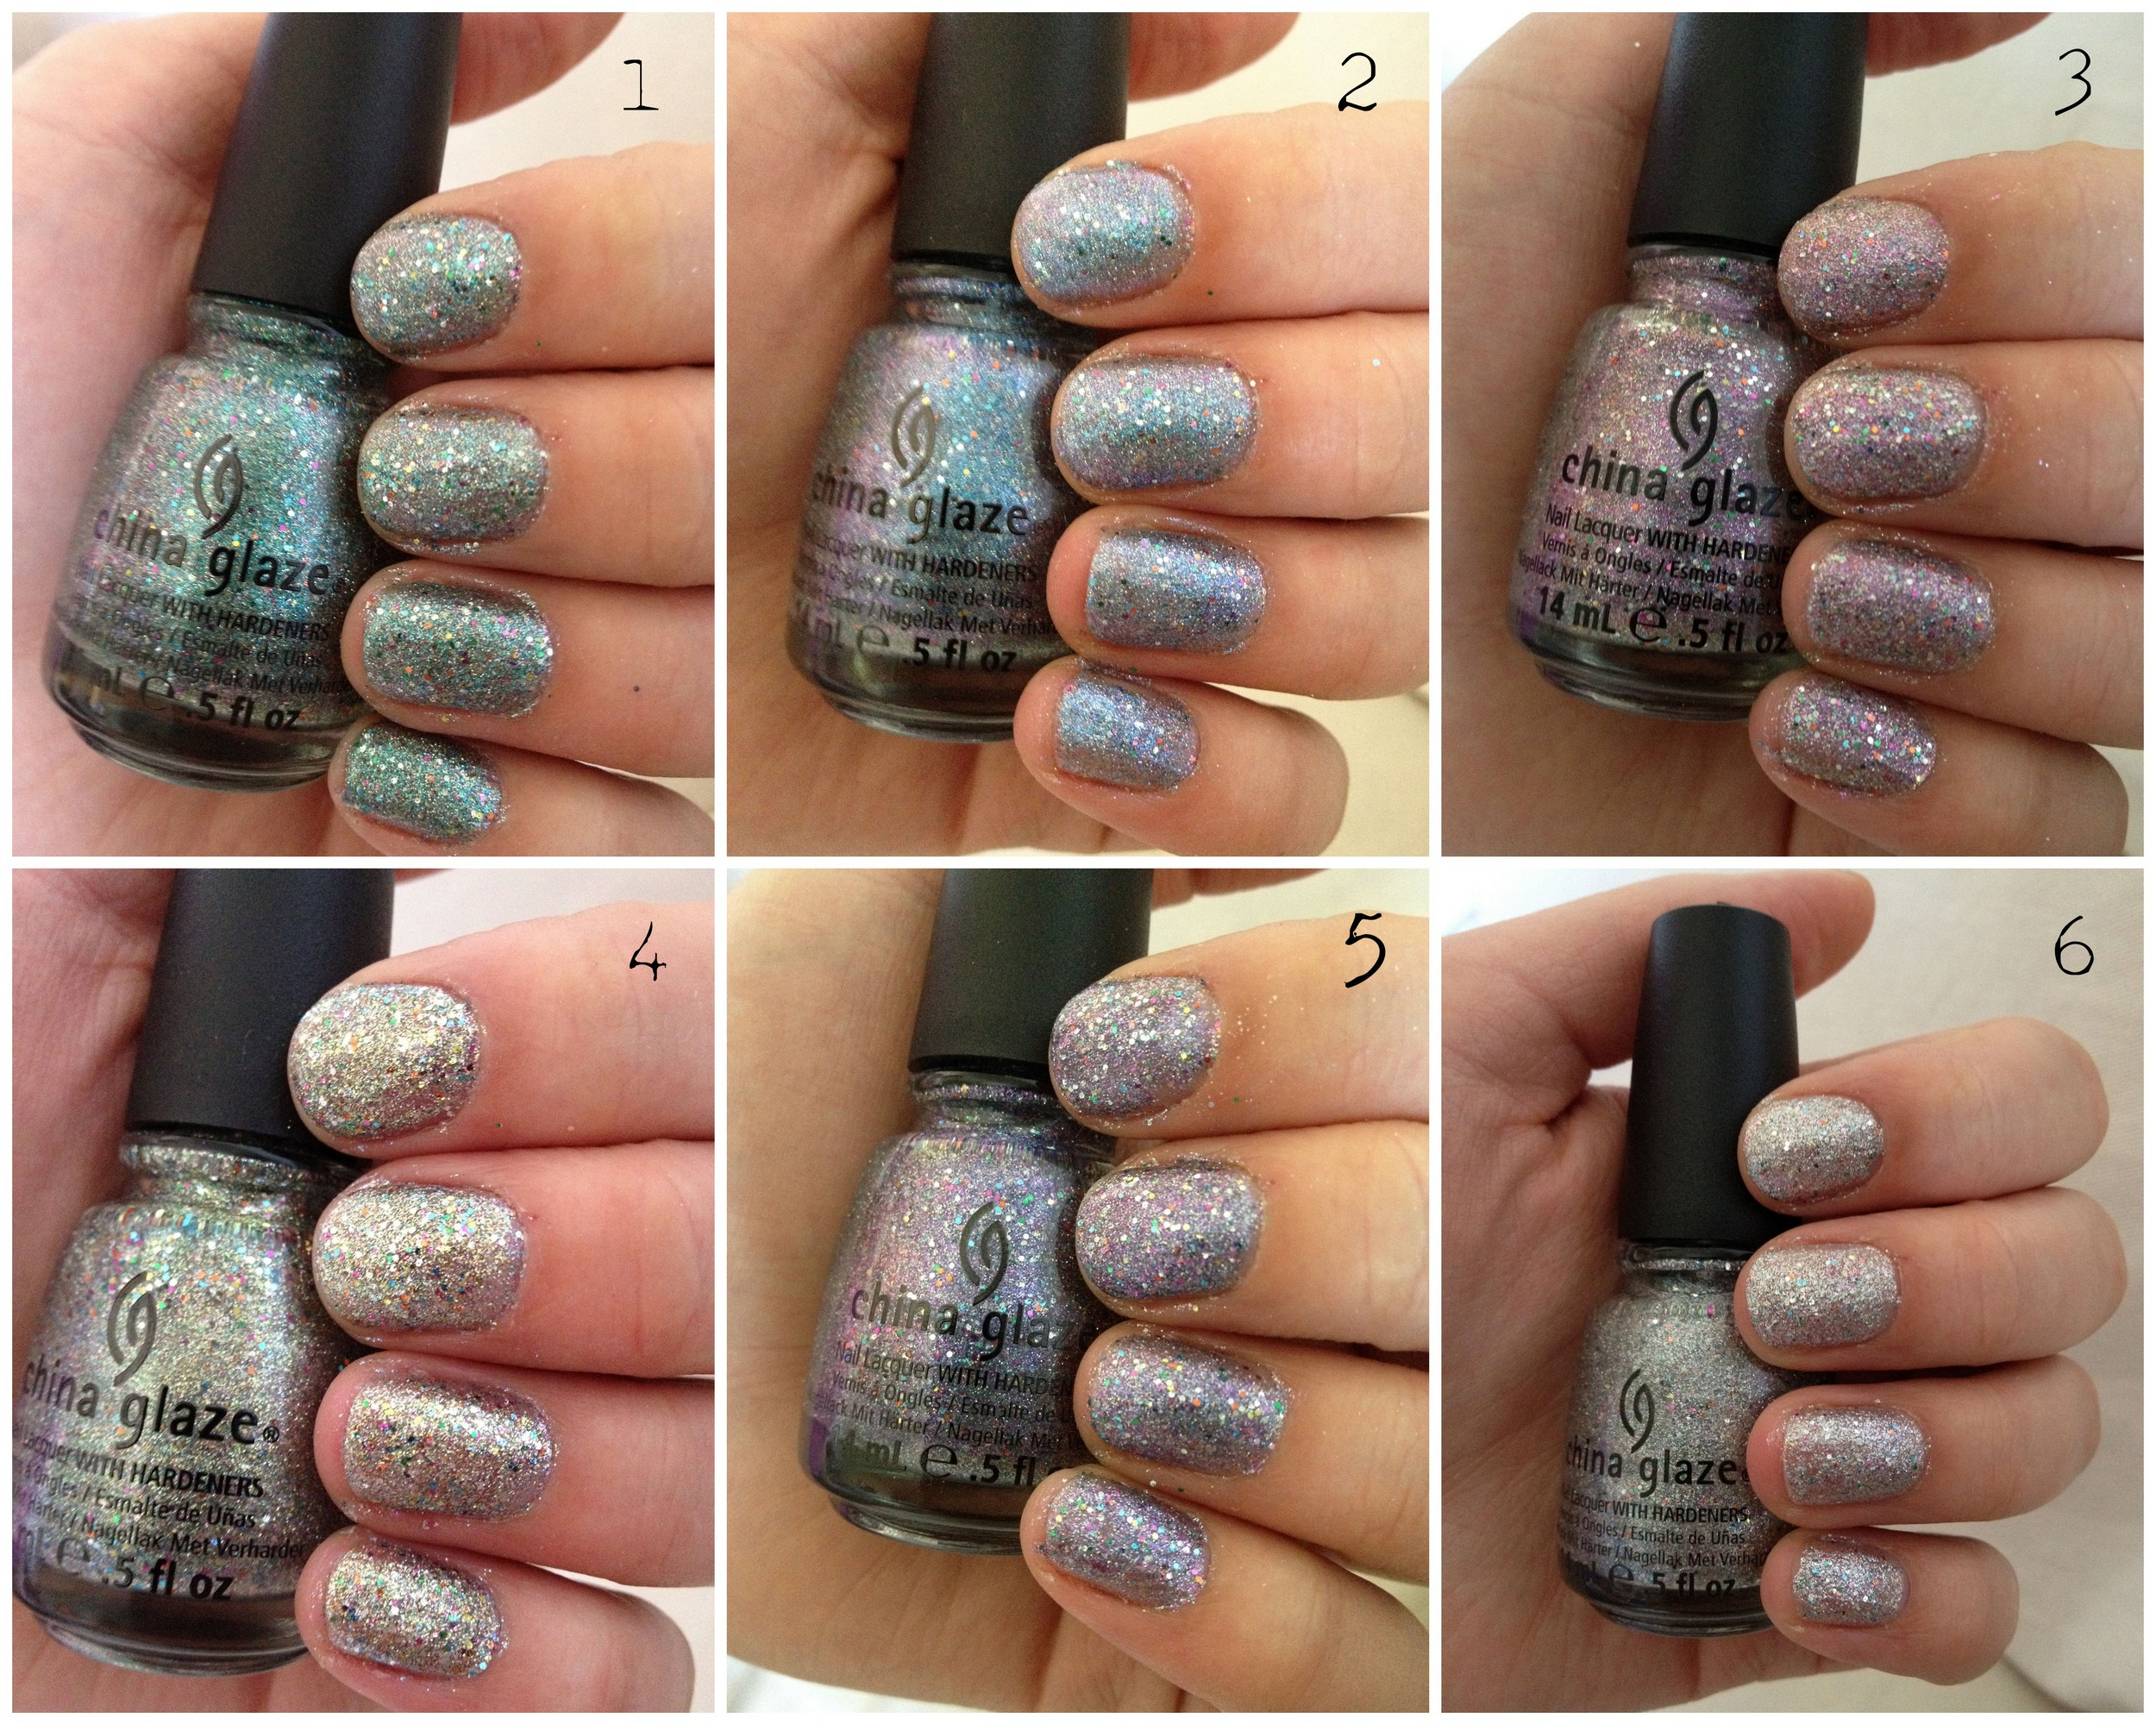 china_glaze_prismatic_review_collage.jpg